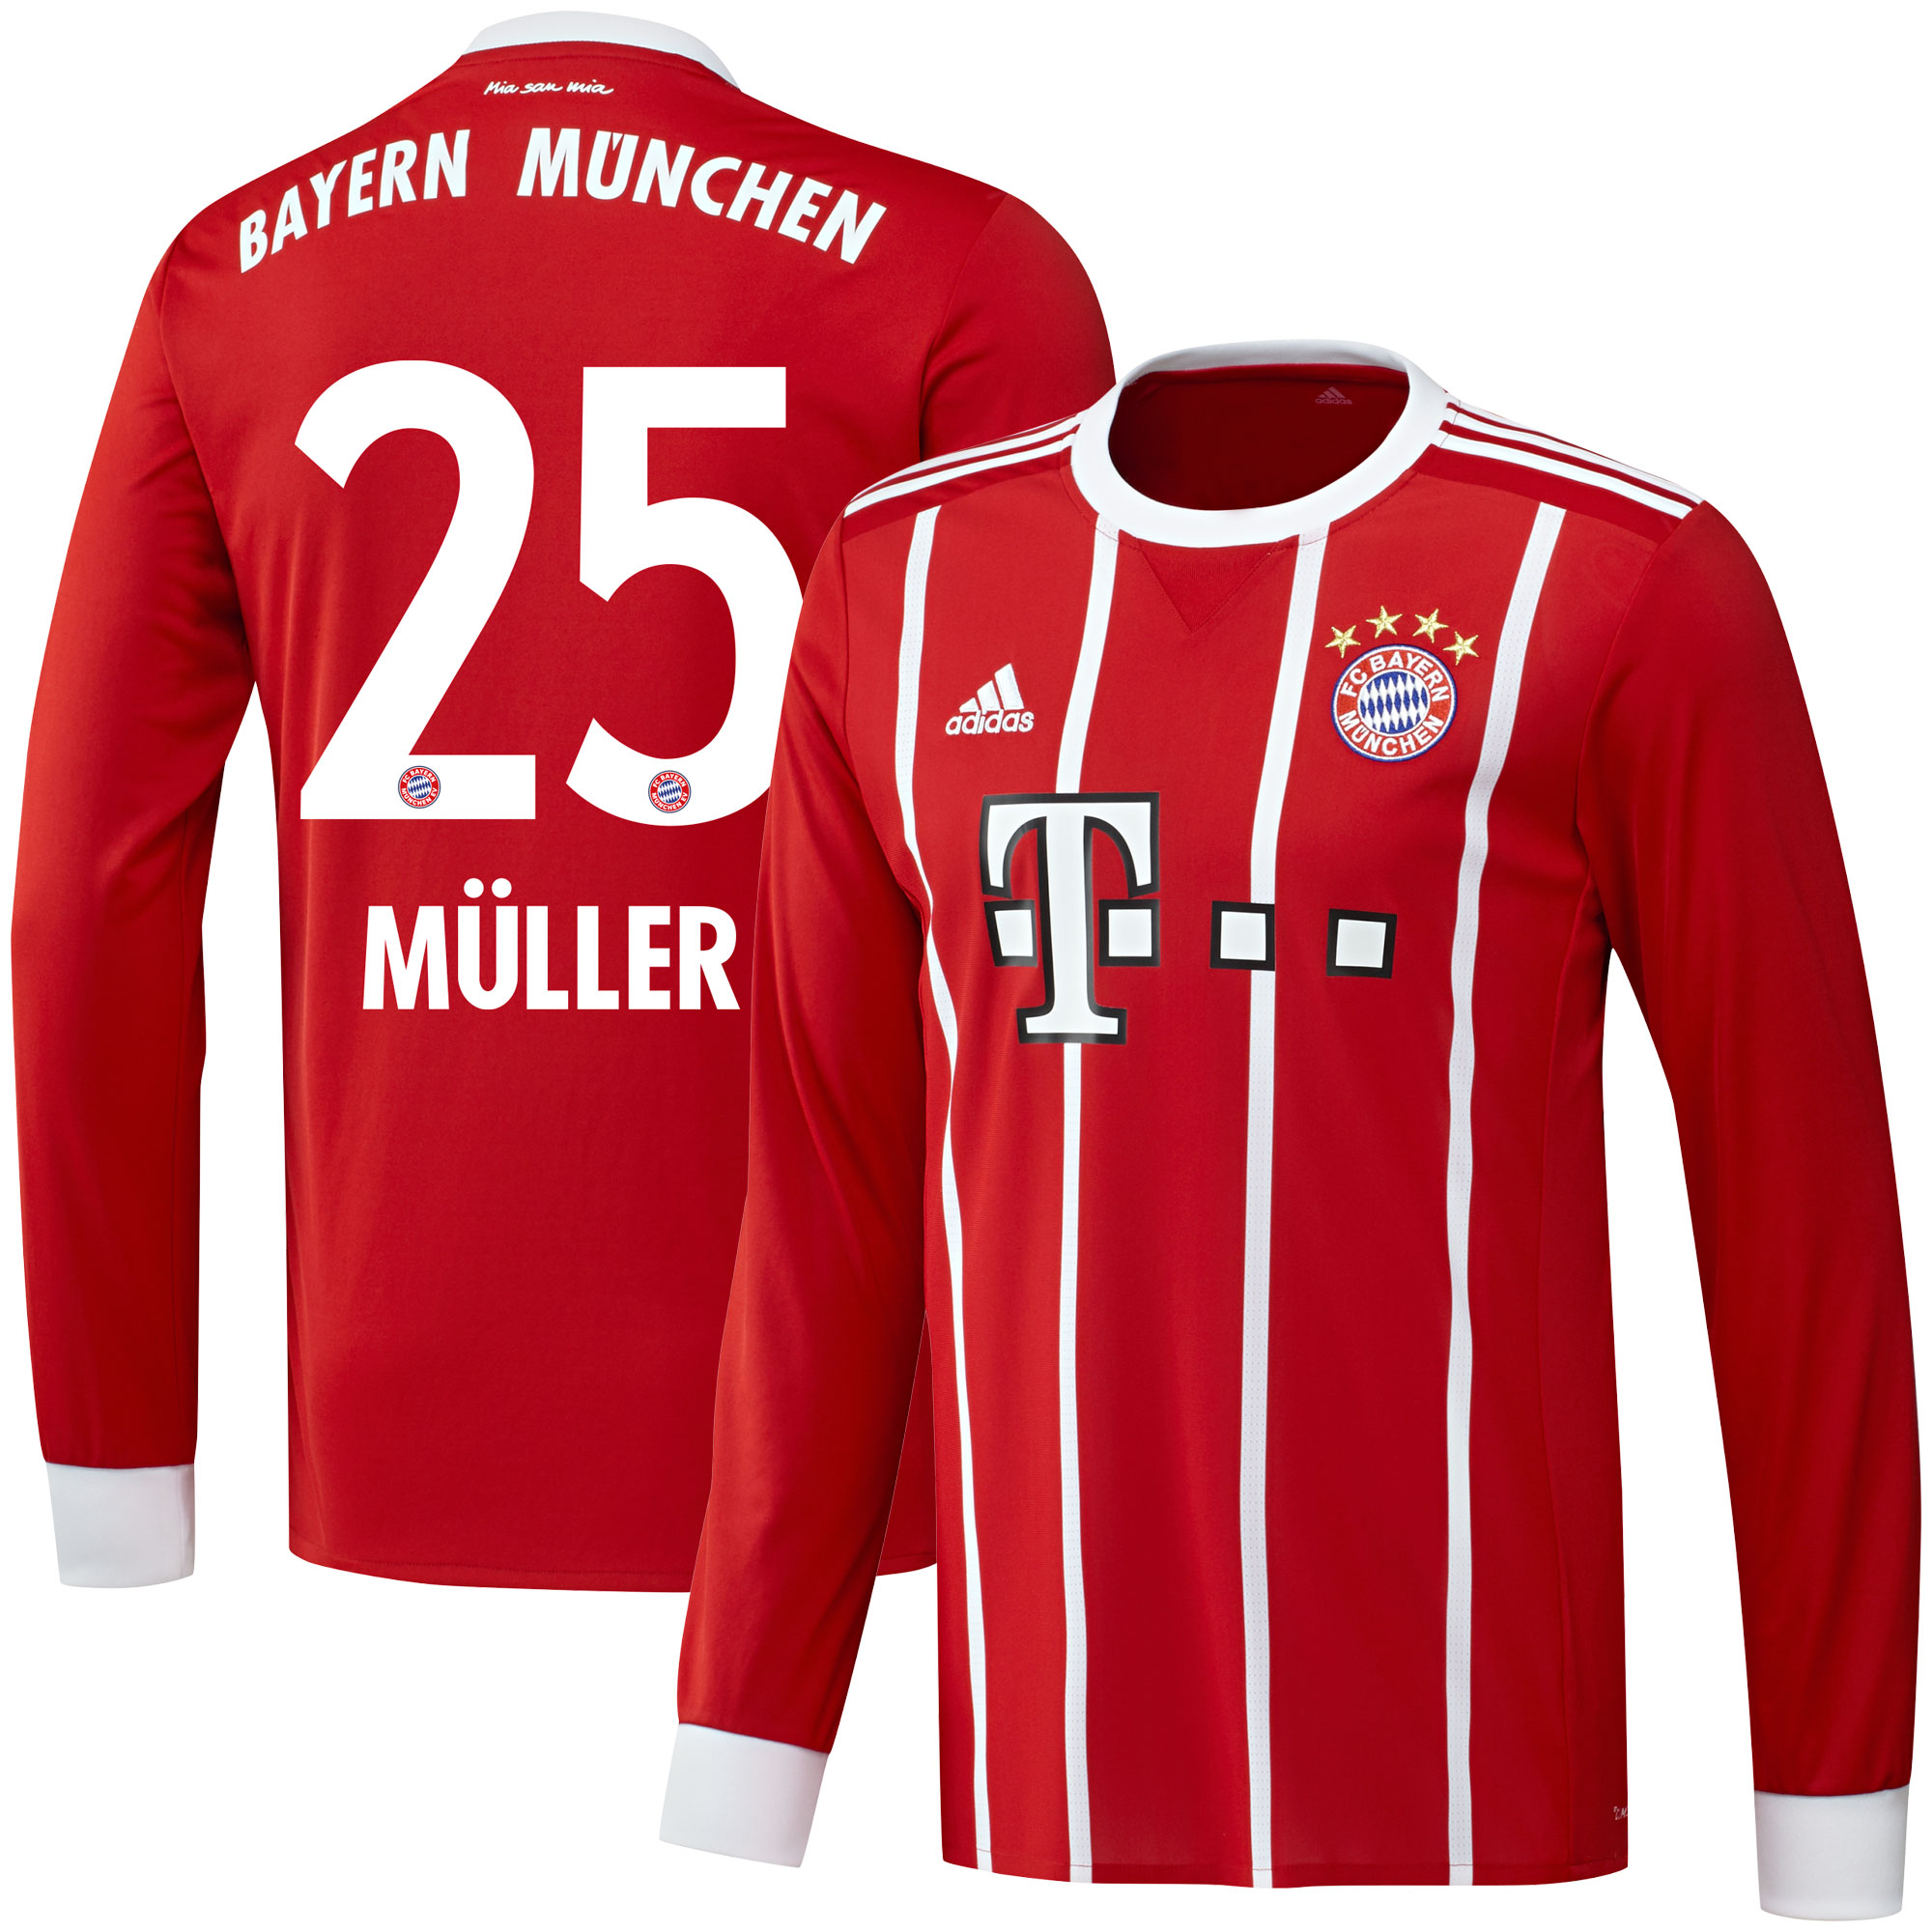 Bayern Munich Home L/S Müller Jersey 2017 / 2018 (Official Printing) - 58